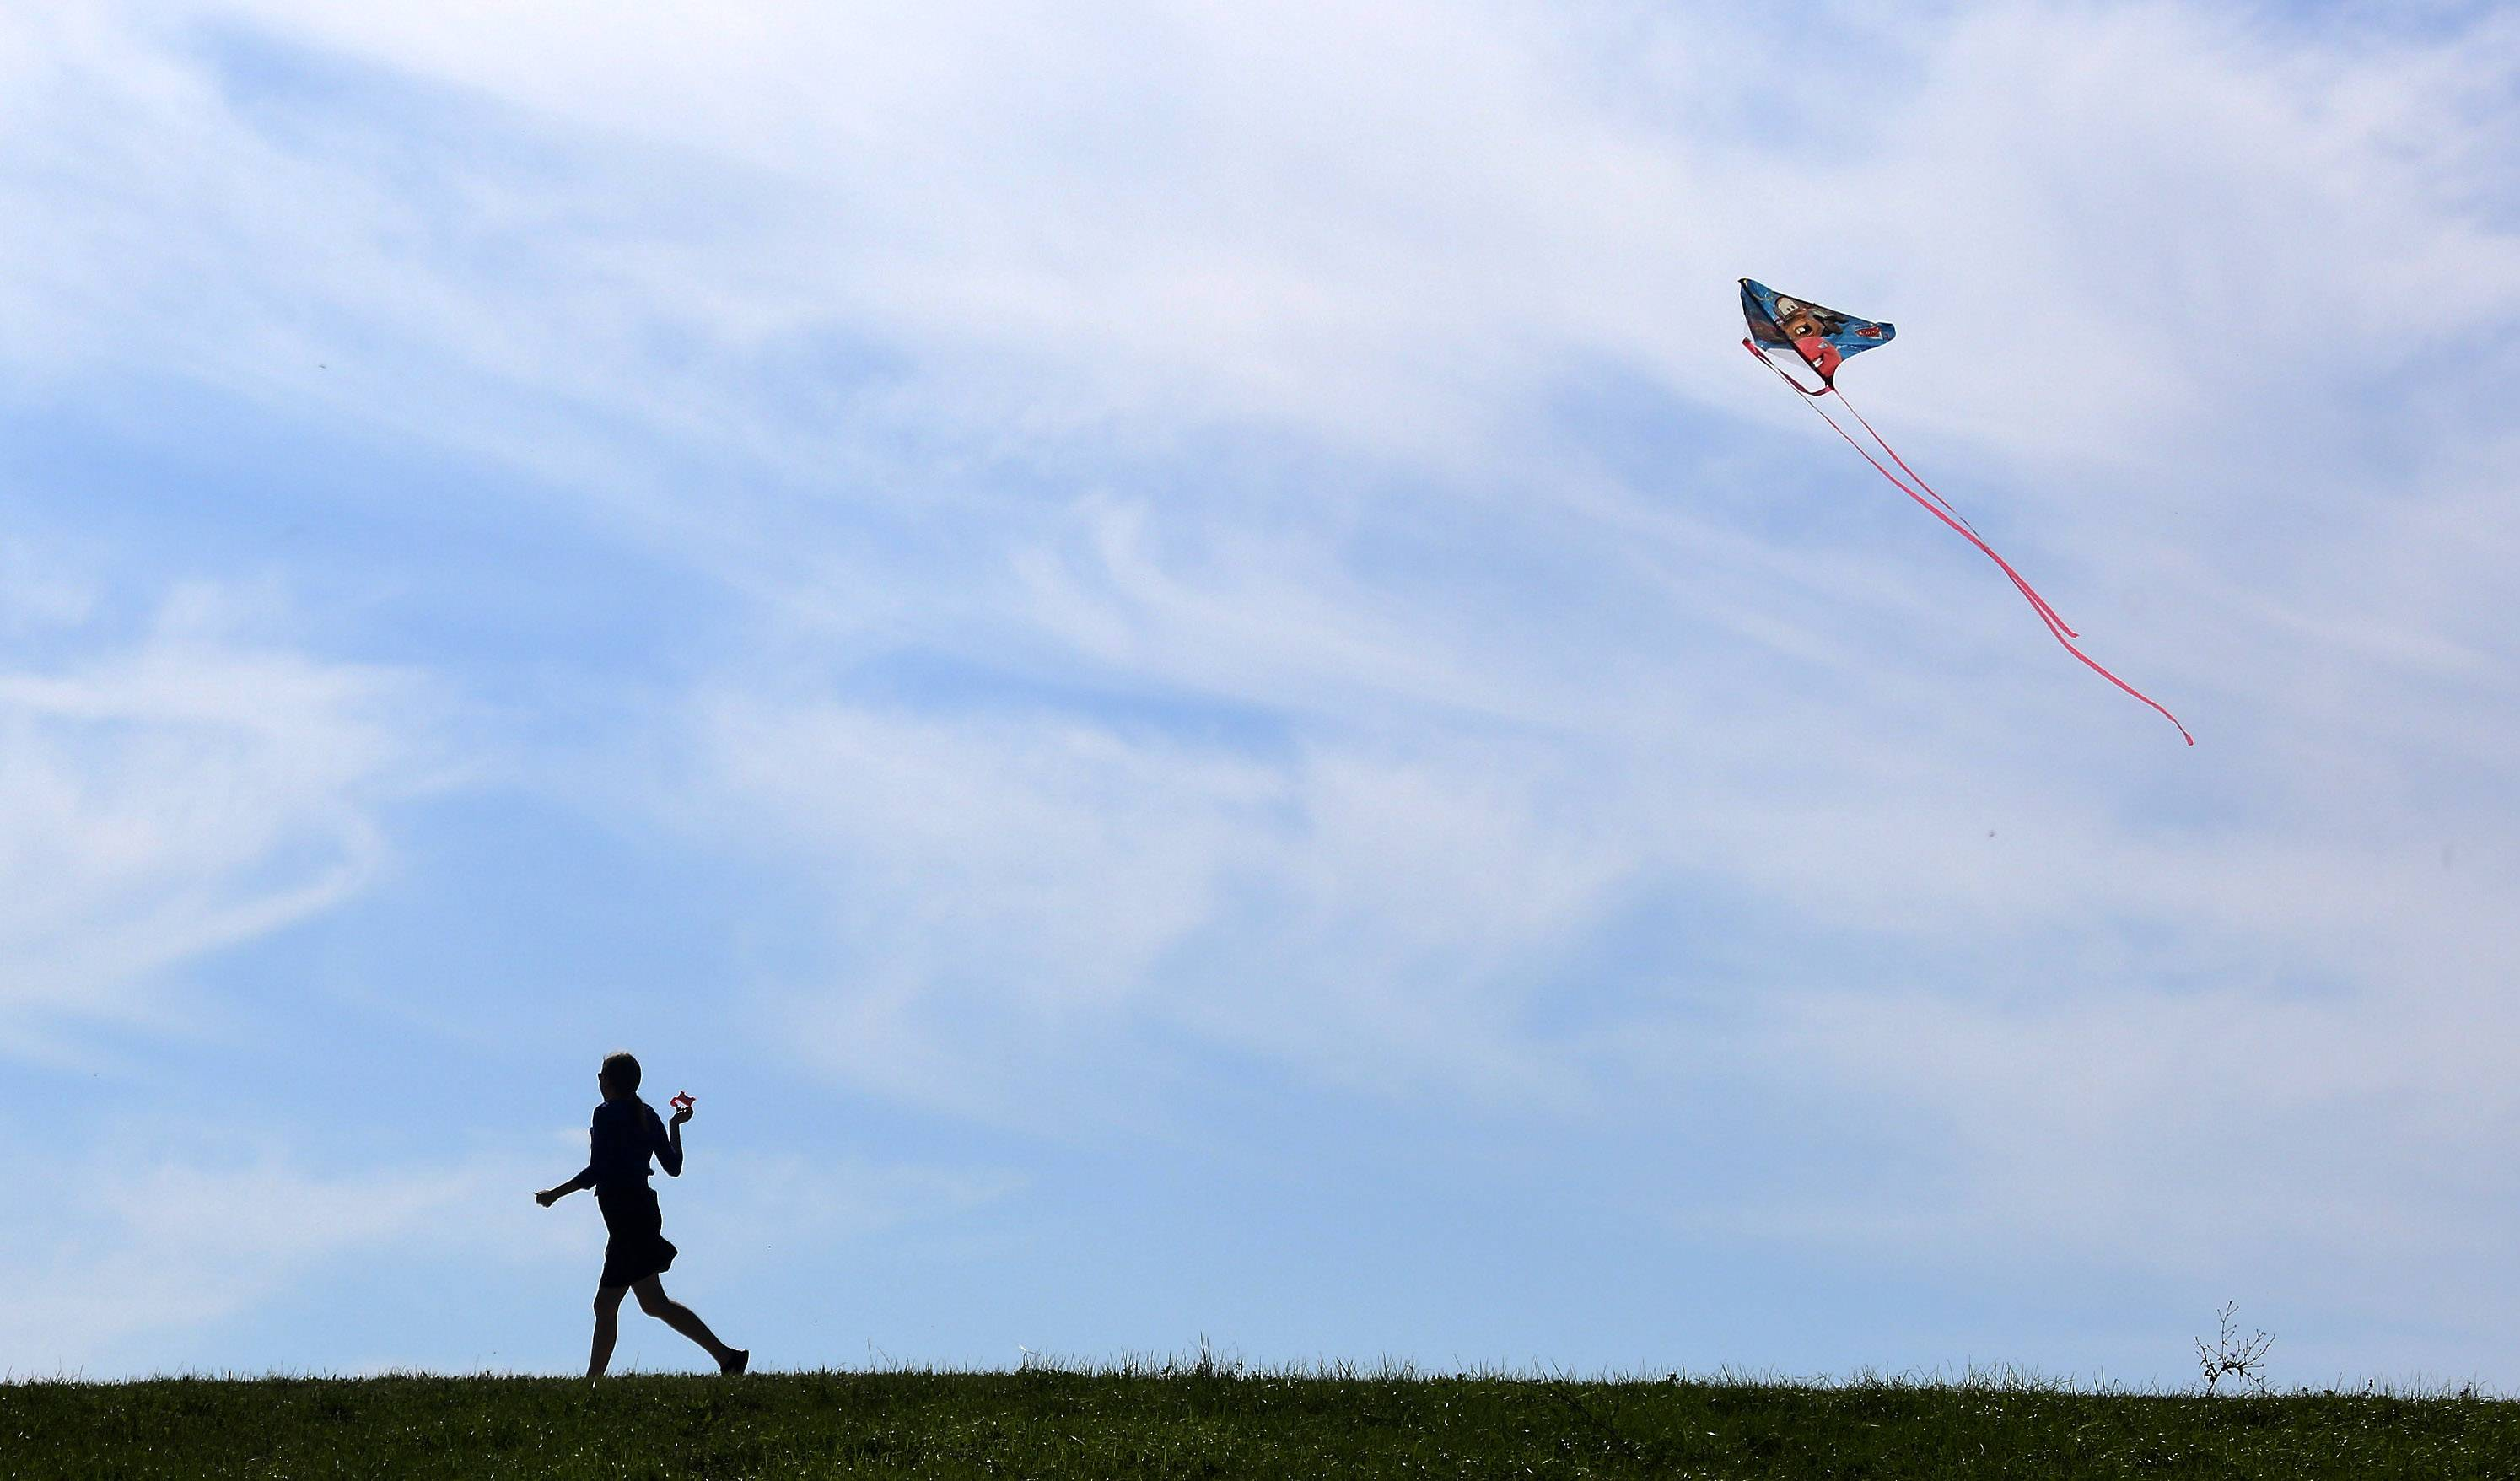 Joyce West, of Antioch, flies a kite during Family Kite Flying Day Sunday at Tim Osmand Sports Complex in Antioch. The first 50 children received free kites at the Antioch Parks and Recreation Department event.